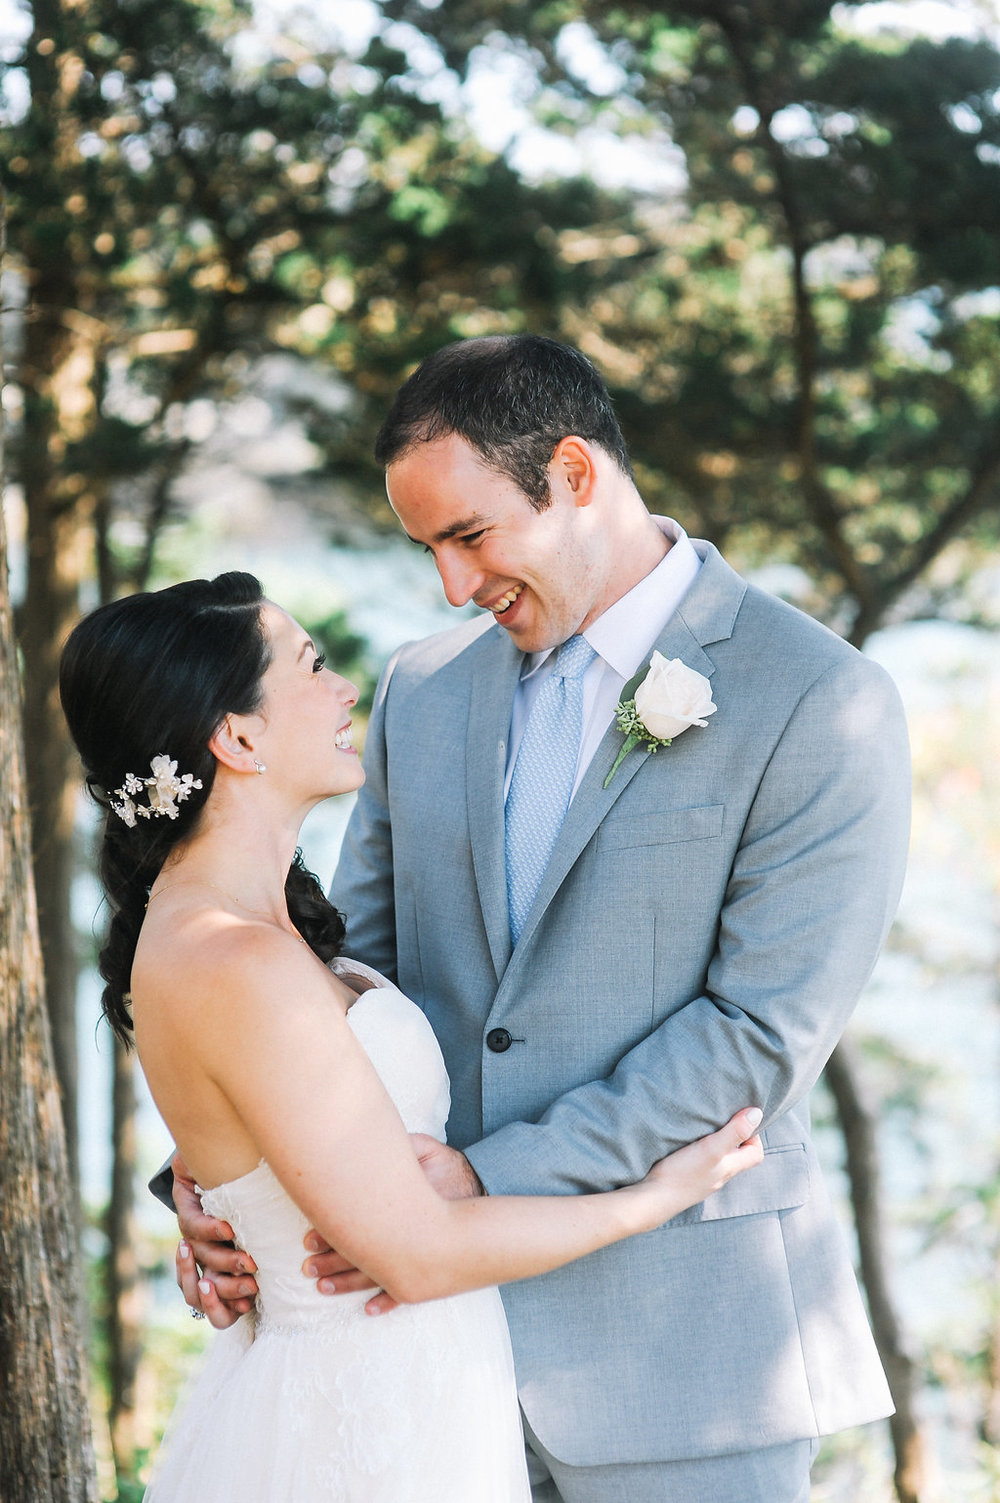 BrideGroomPortraits_Dragonline_Studios_Jamestown_RI_Wedding-32.jpg